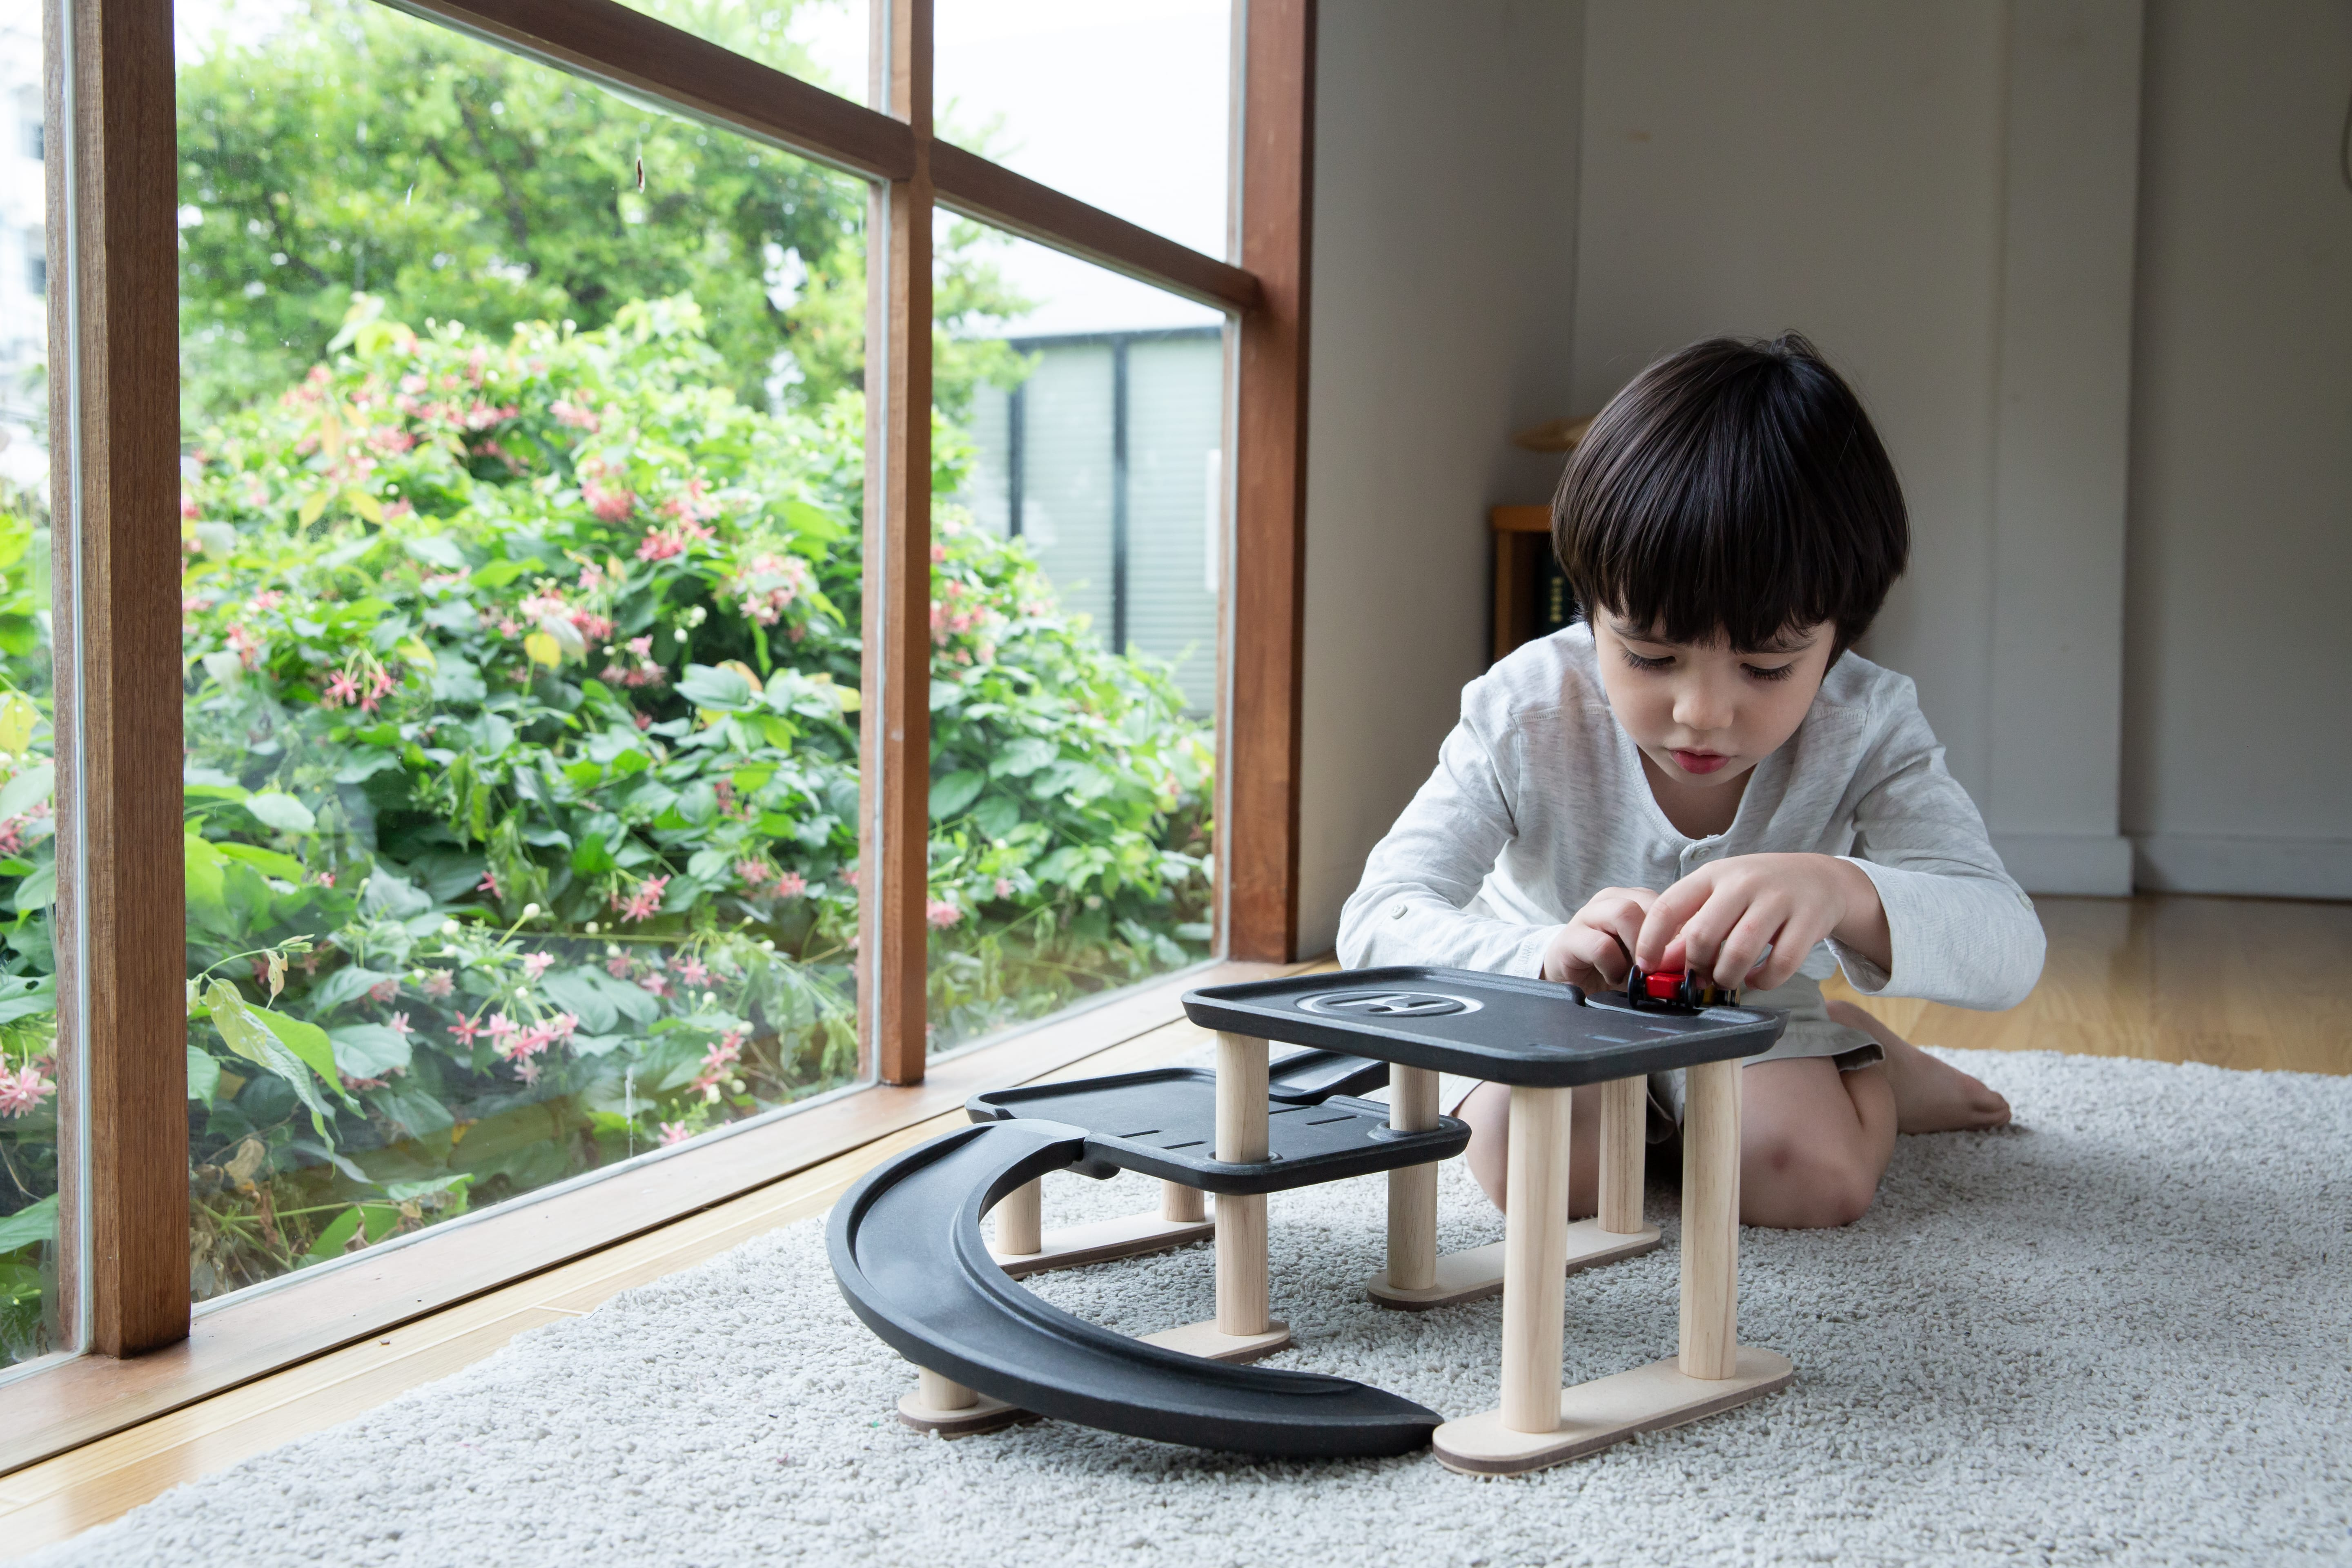 6270_PlanToys_RACE_N_PLAY_PARKING_GARAGE_Pretend_Play_Imagination_Coordination_Social_Language_and_Communications_Fine_Motor_3yrs_Wooden_toys_Education_toys_Safety_Toys_Non-toxic_1.jpg